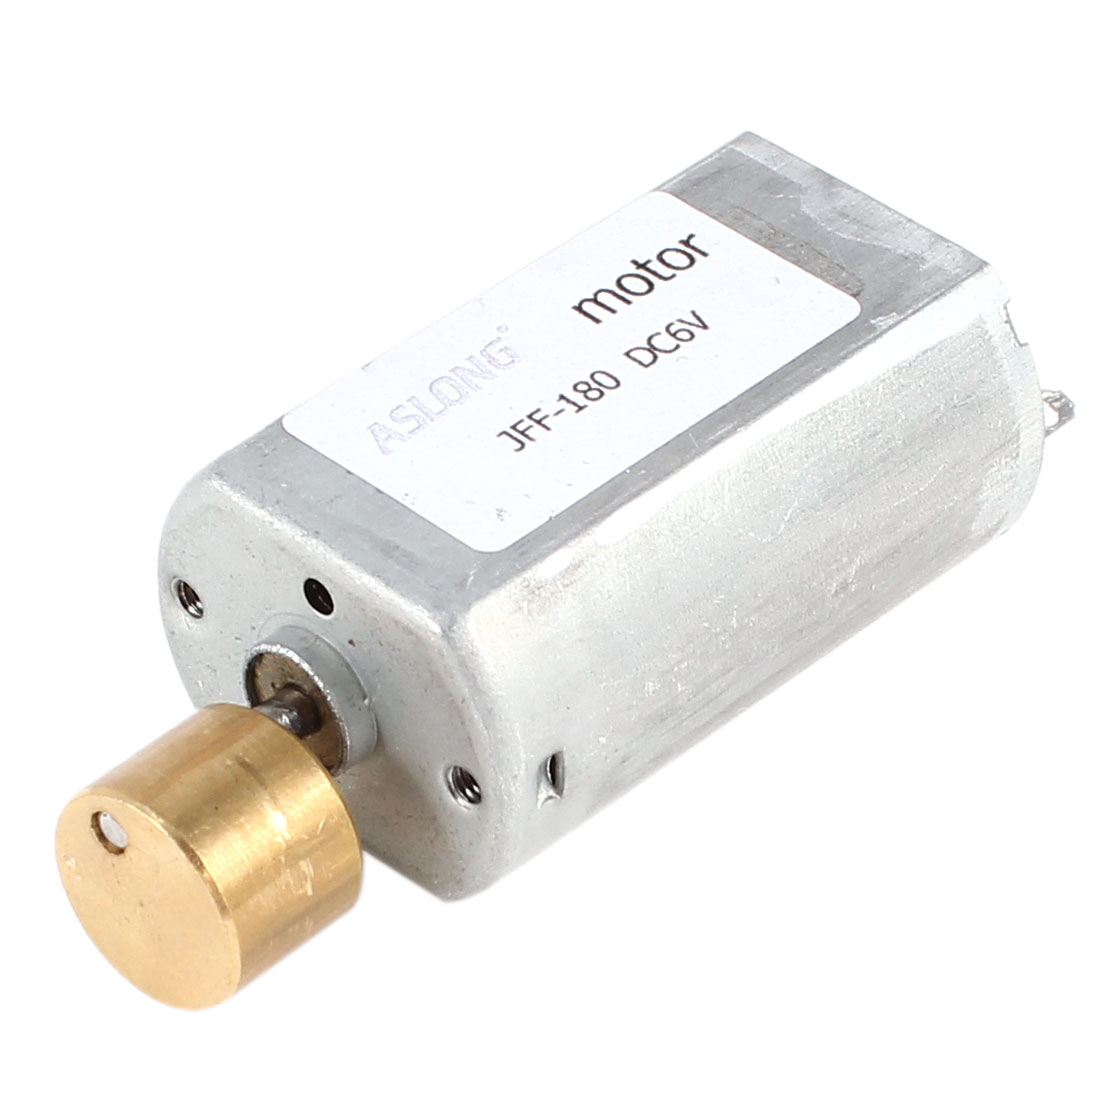 JFF-180 DC 6V 28mA 6500RPM Micro Vibration Motor for Massager RC Toy Model